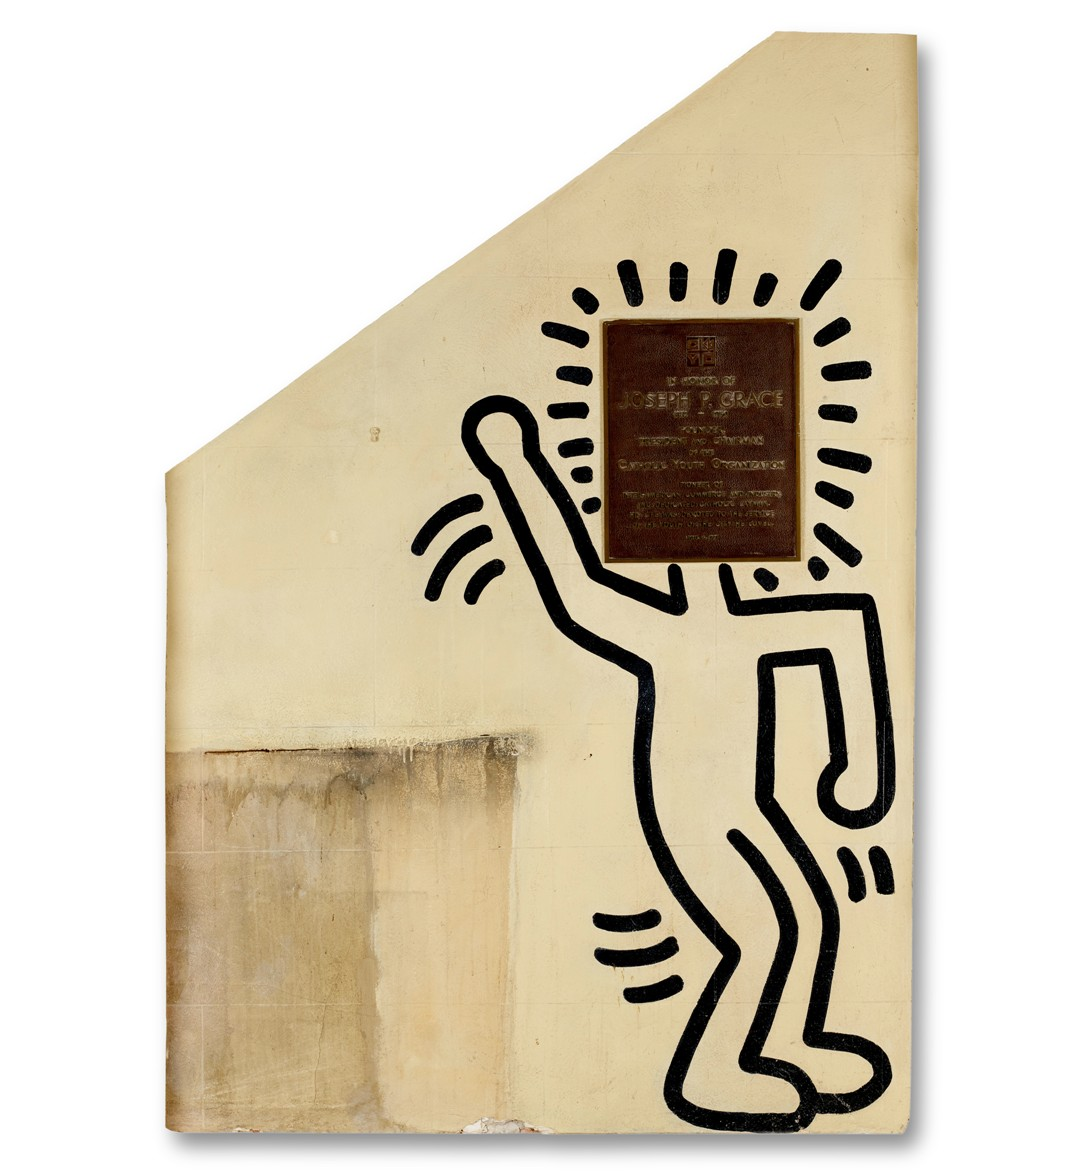 Keith Haring's Grace House Mural